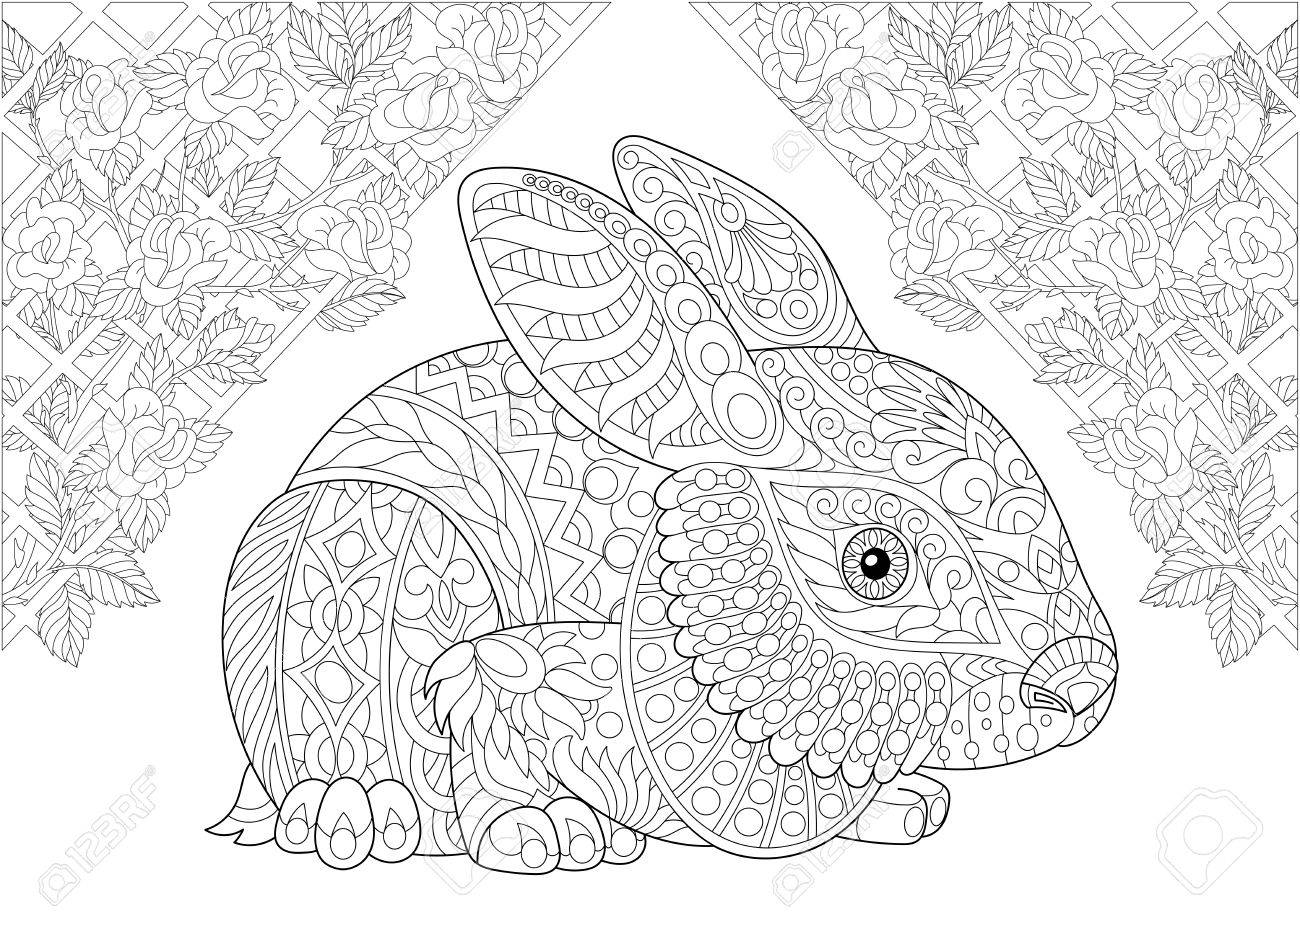 Coloring Page. Rabbit From Wonderland And Rose Flowers. Freehand ...